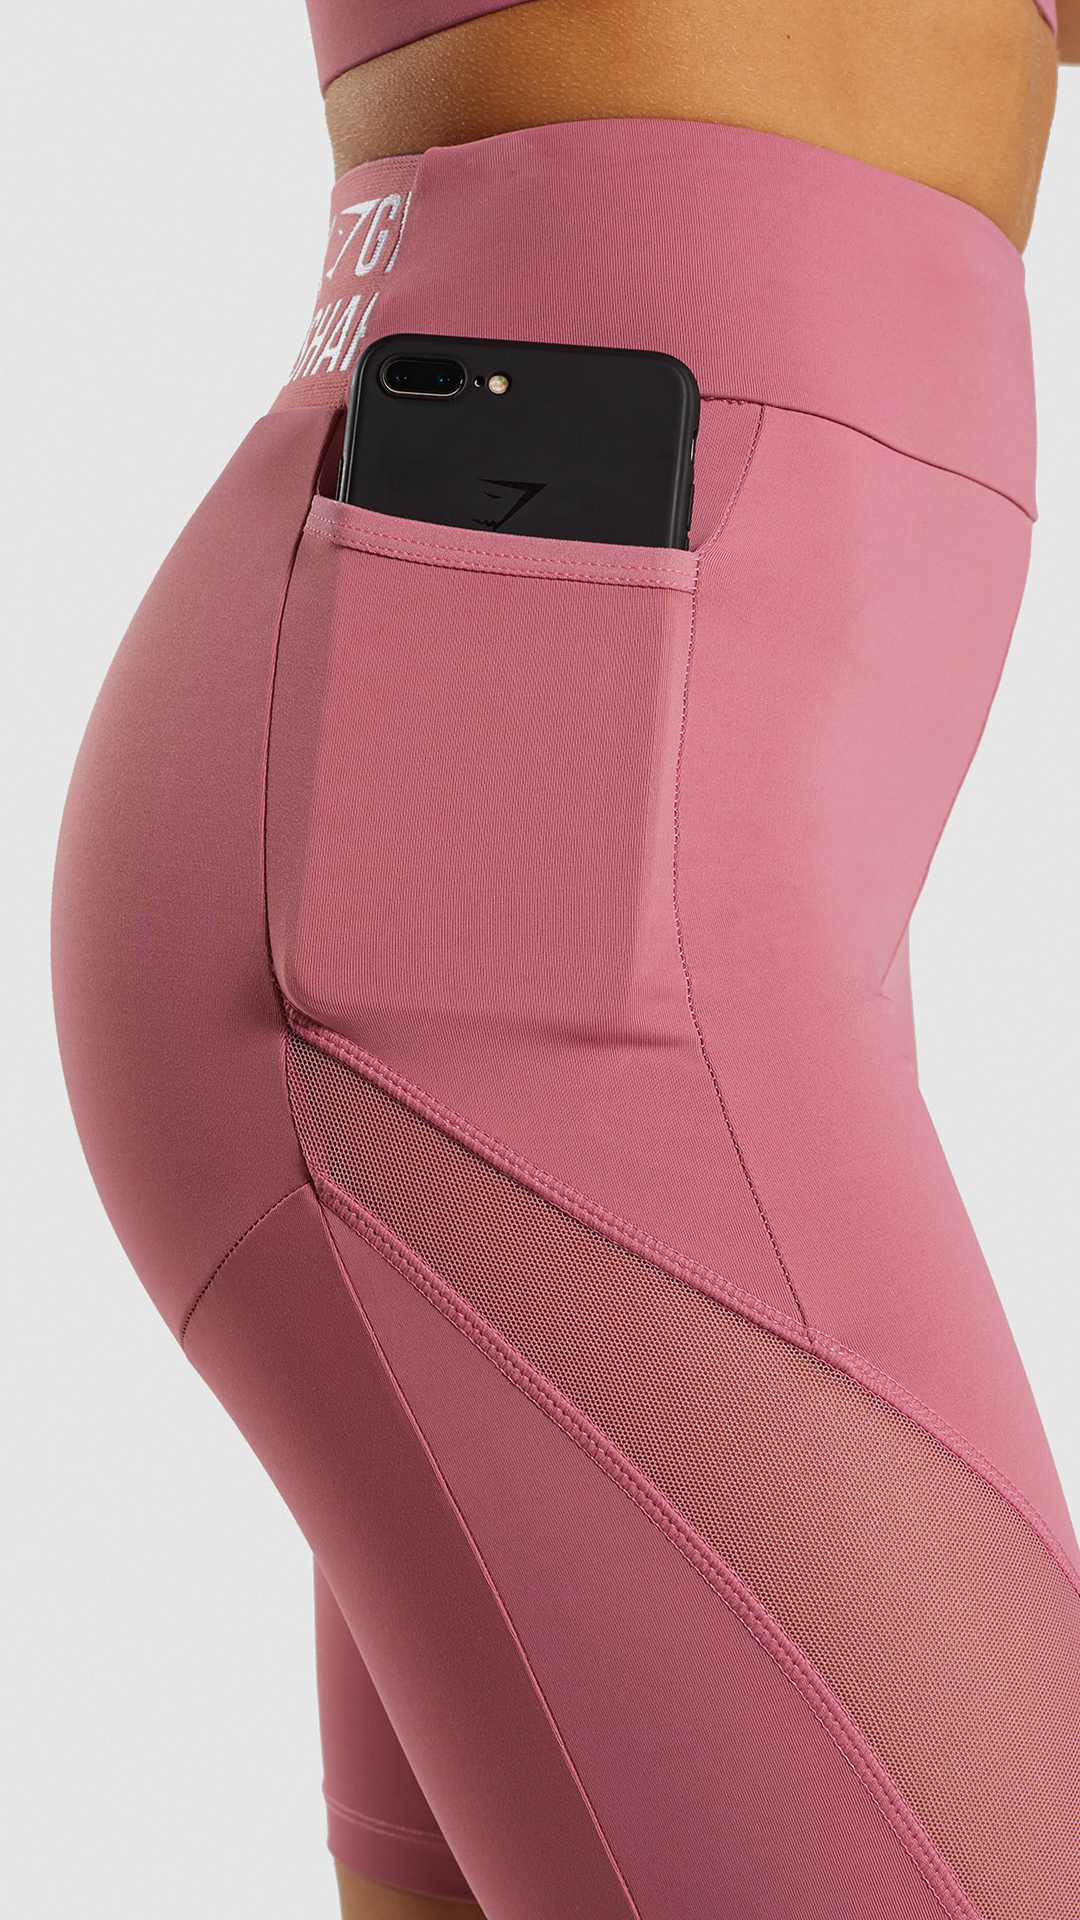 3a32f23ce9 Roupas. The Elevate Cycling Shorts